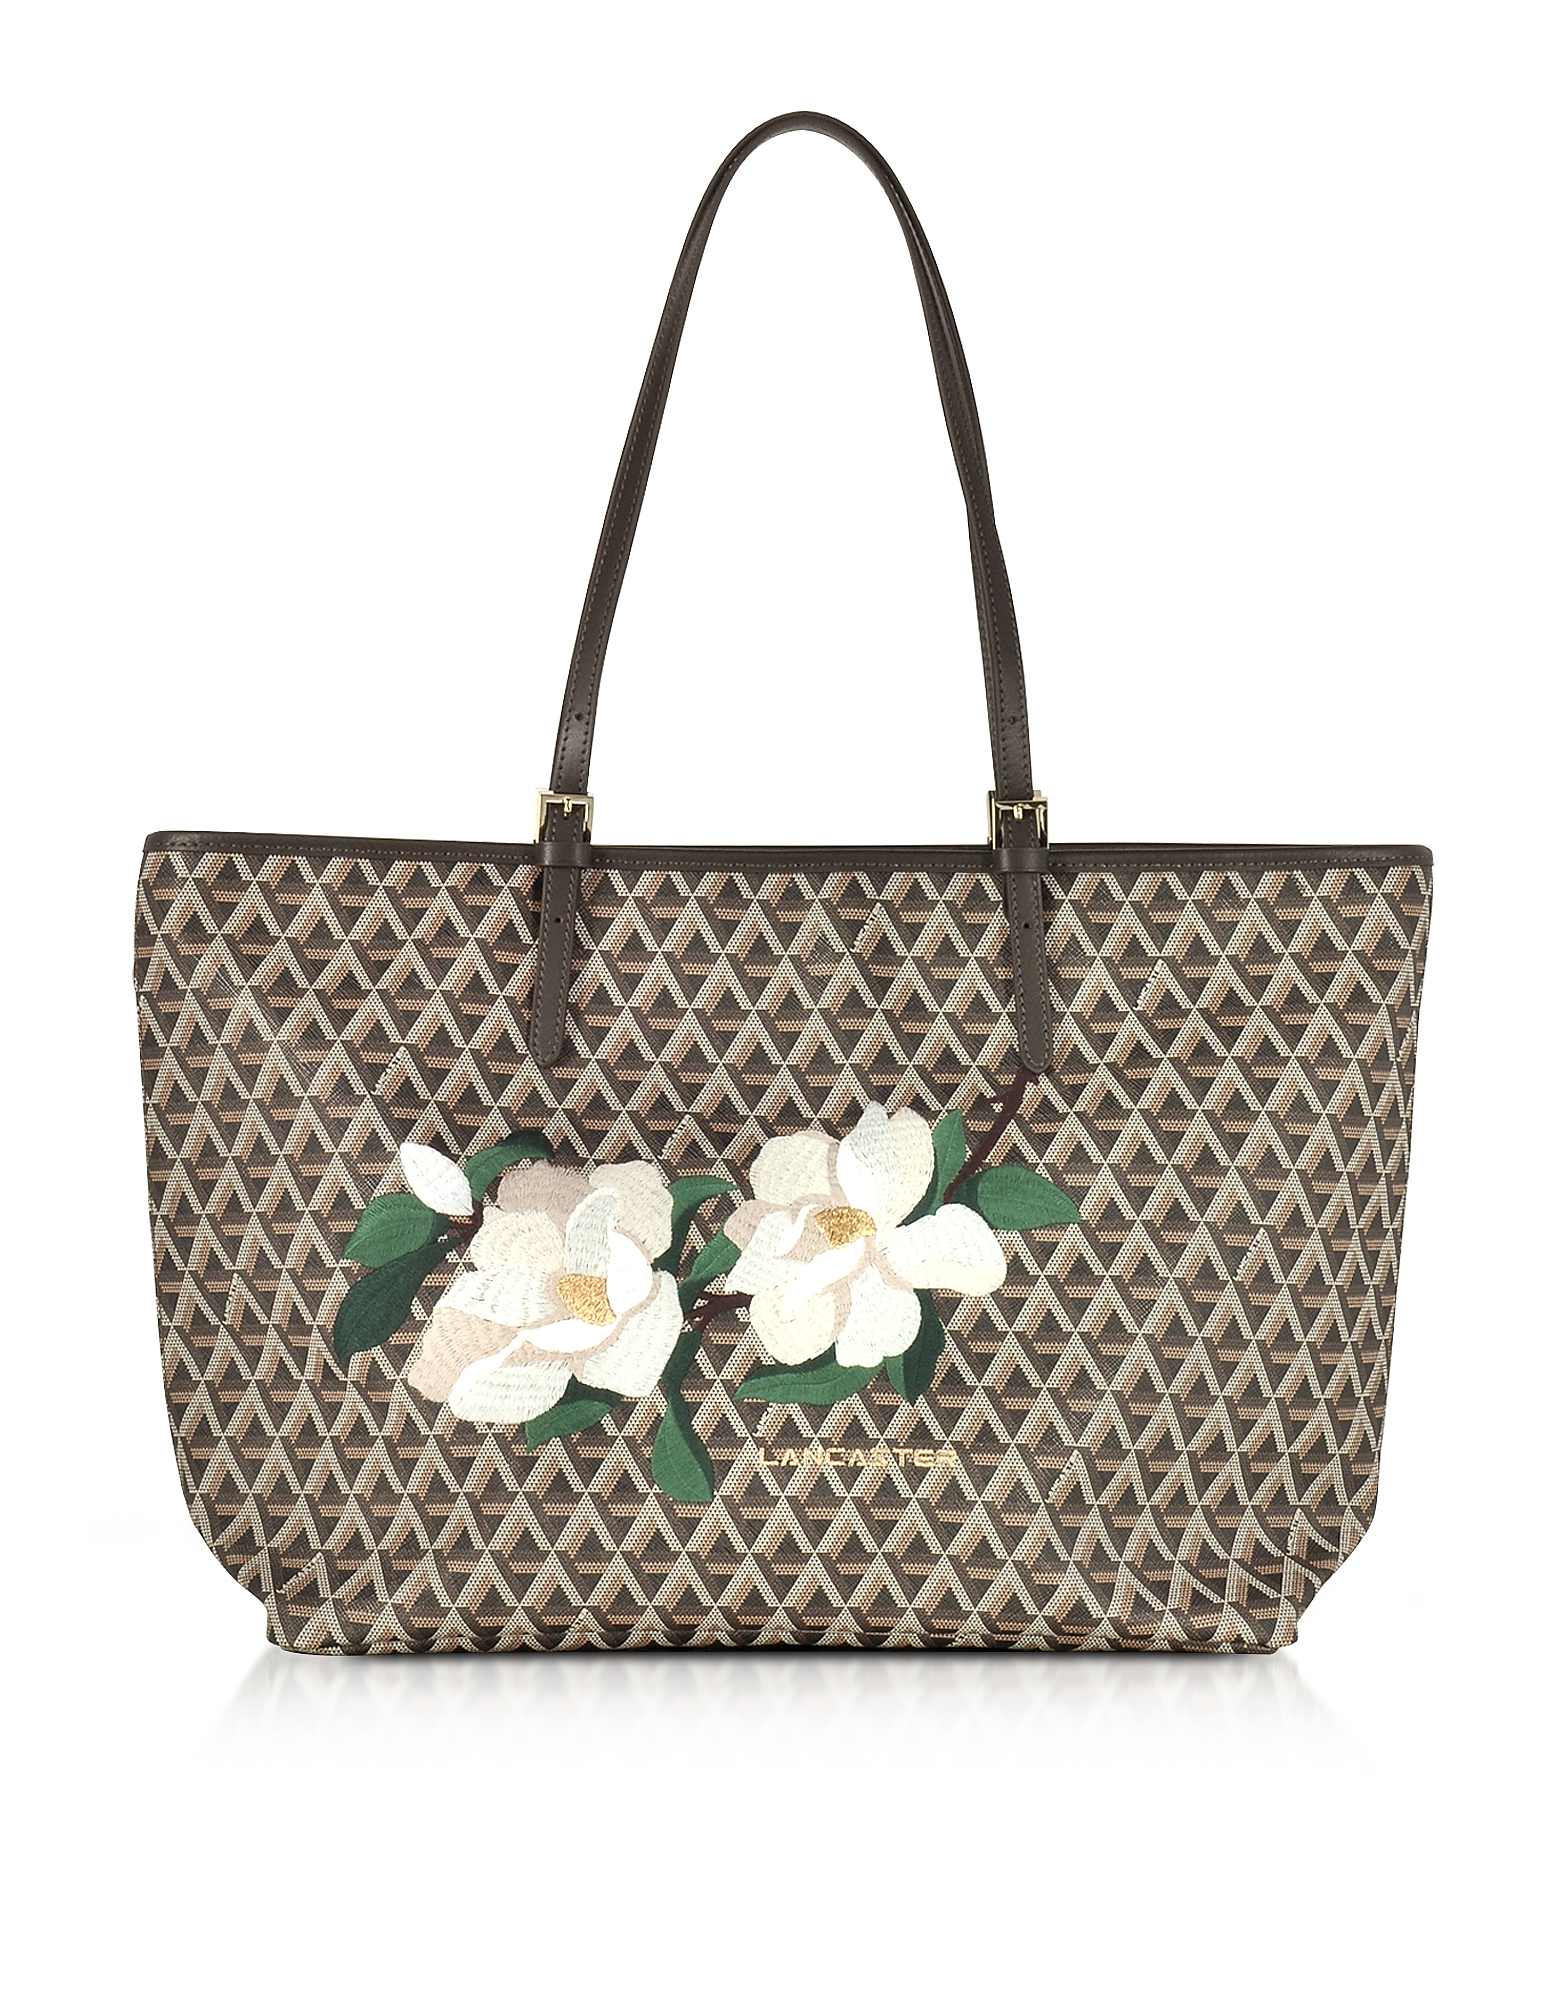 Lancaster Paris Handbags, Icon Brown Coated Canvas & Leather Tote Bag w/Magnolia Embroidery